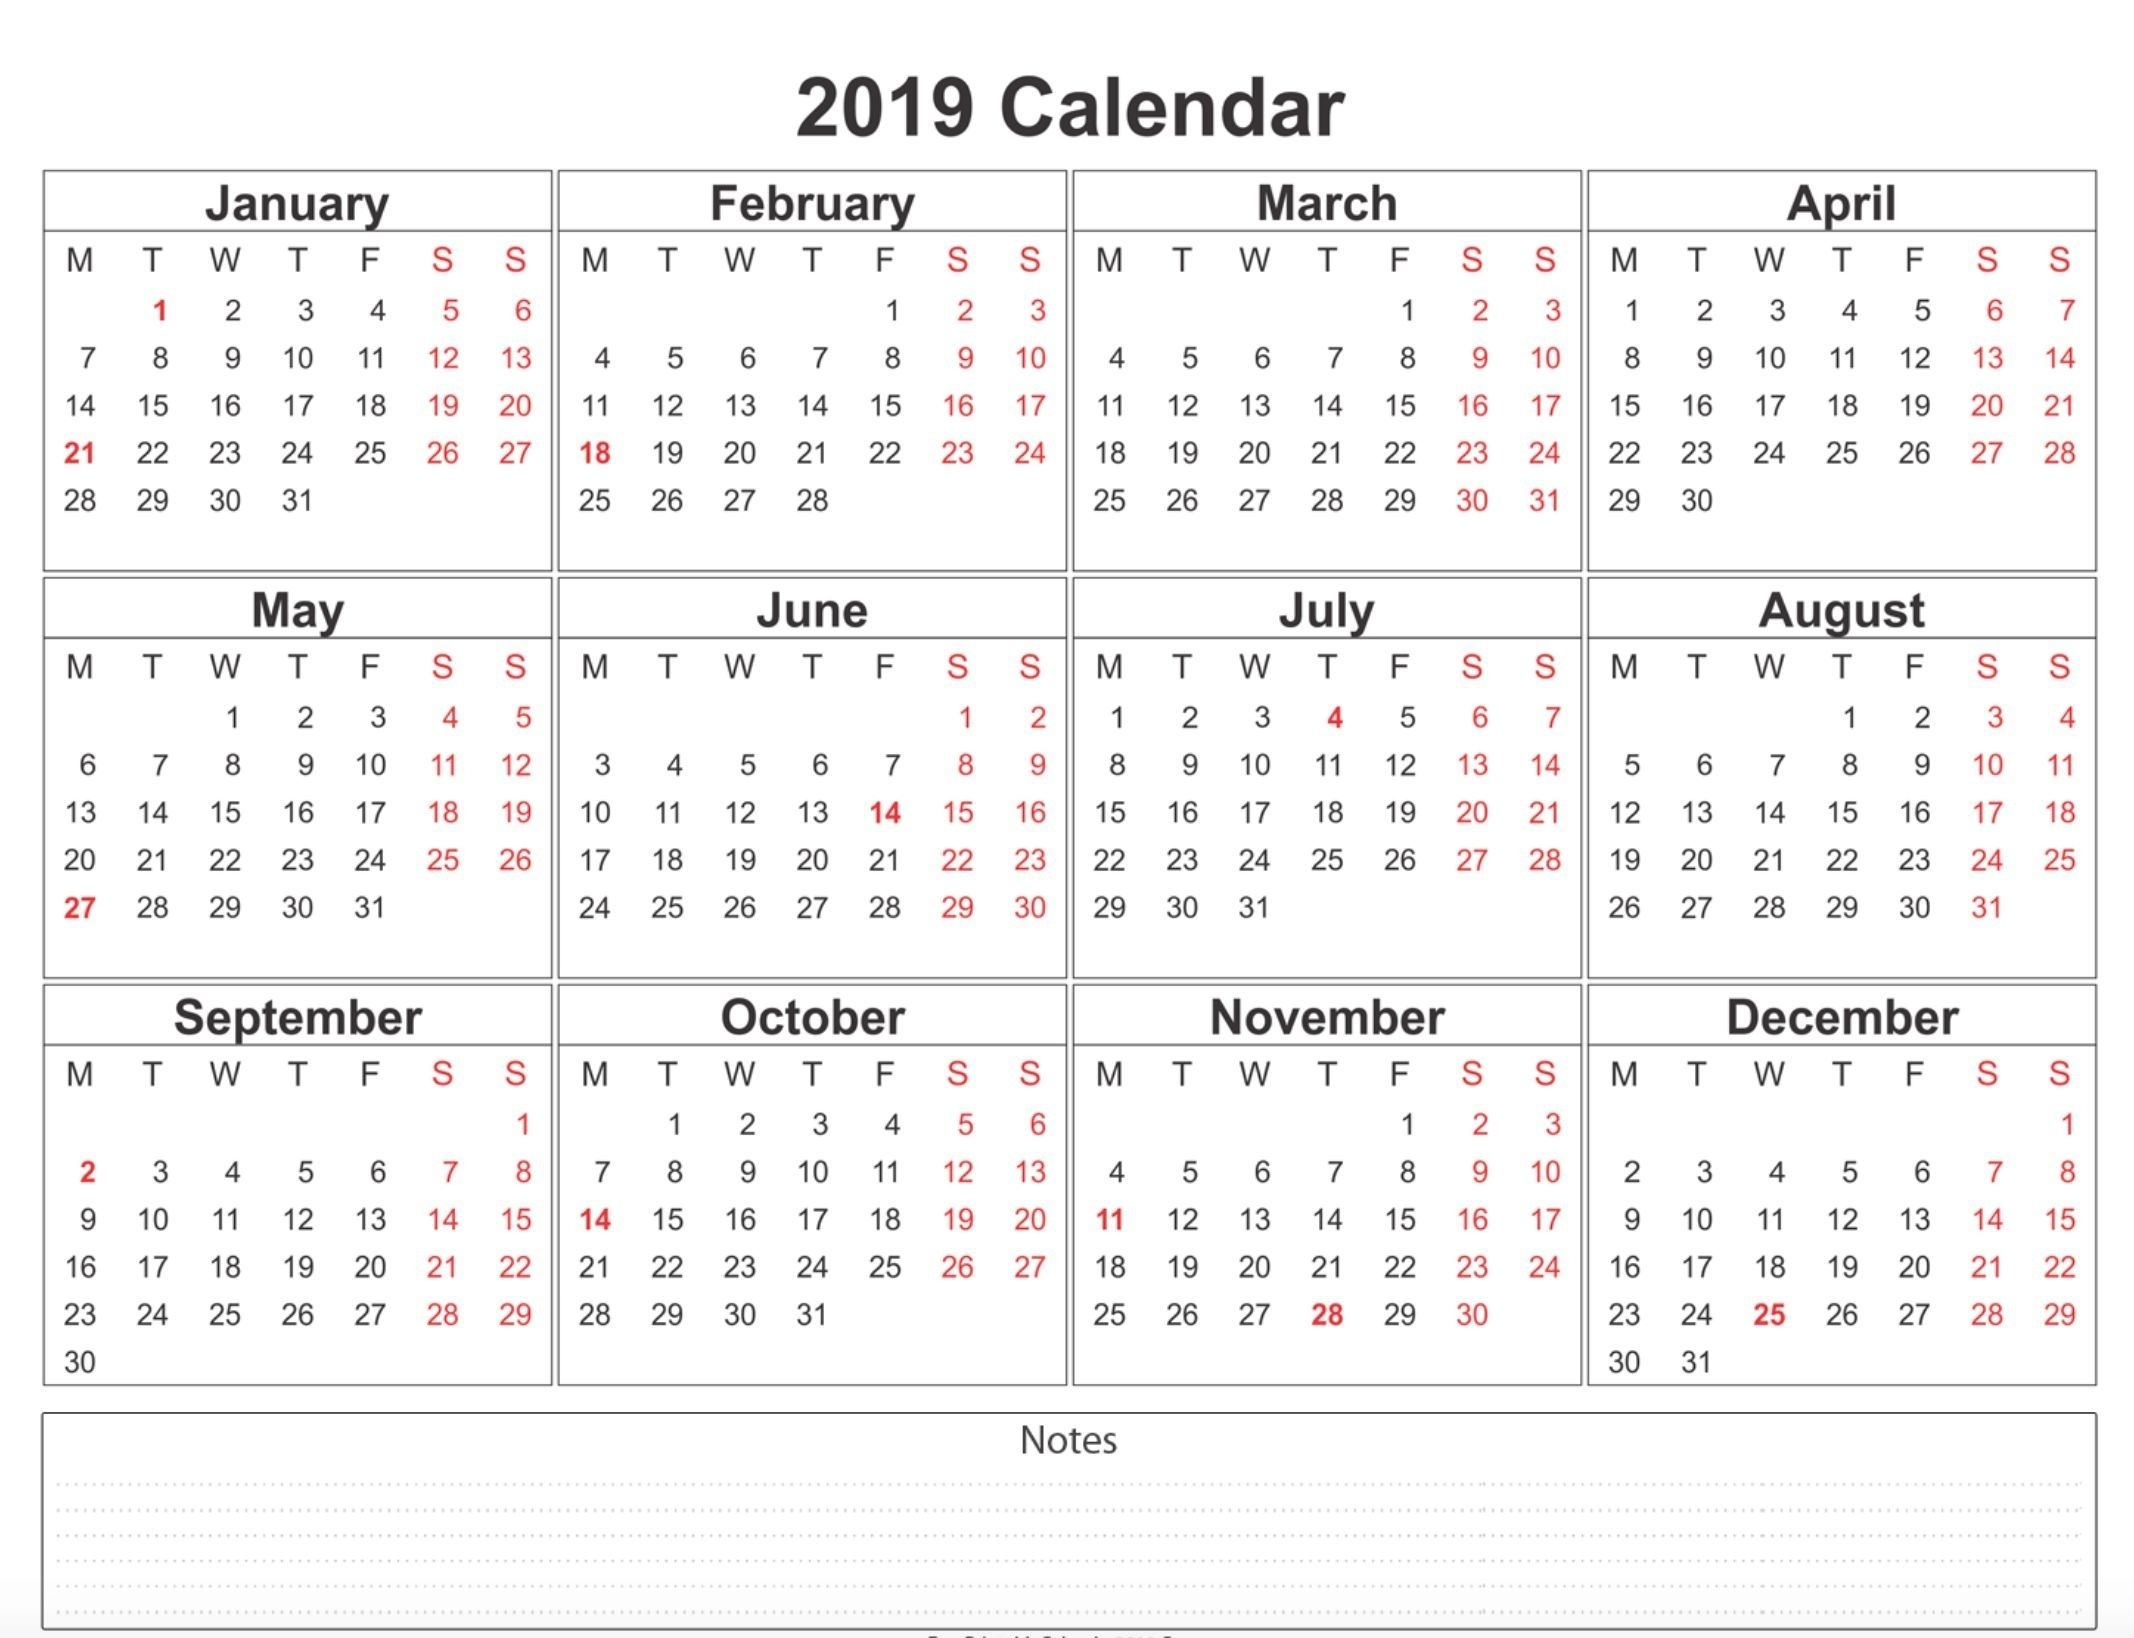 2019 Weekly Calendar Printable | Calendar 2019 Template, 12 Perky Calendar Template Months On One Page Word